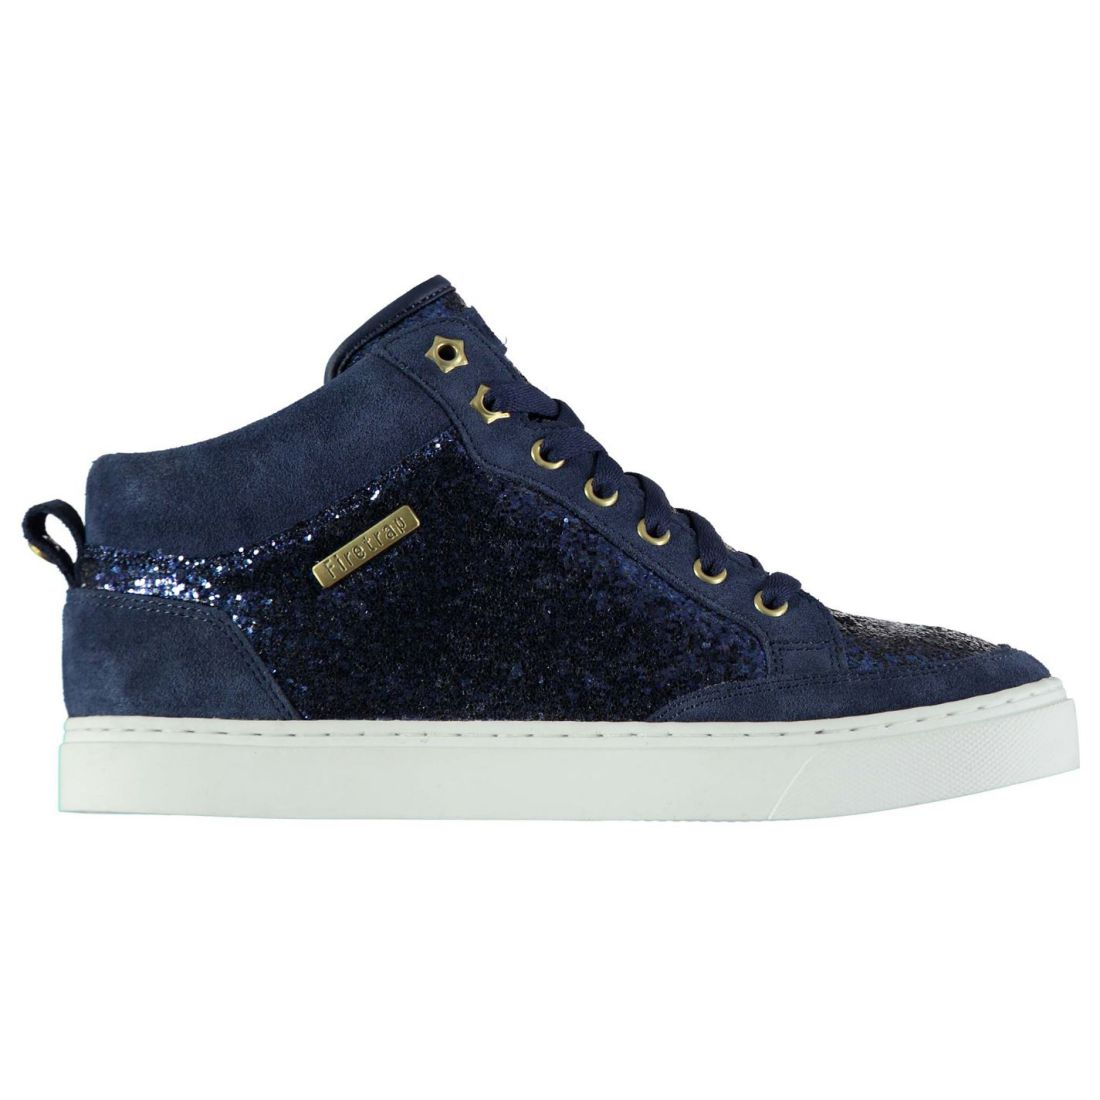 Firetrap Laces Joy Ladies Fastened Padded Hi Sneakers Top High hrdstQ